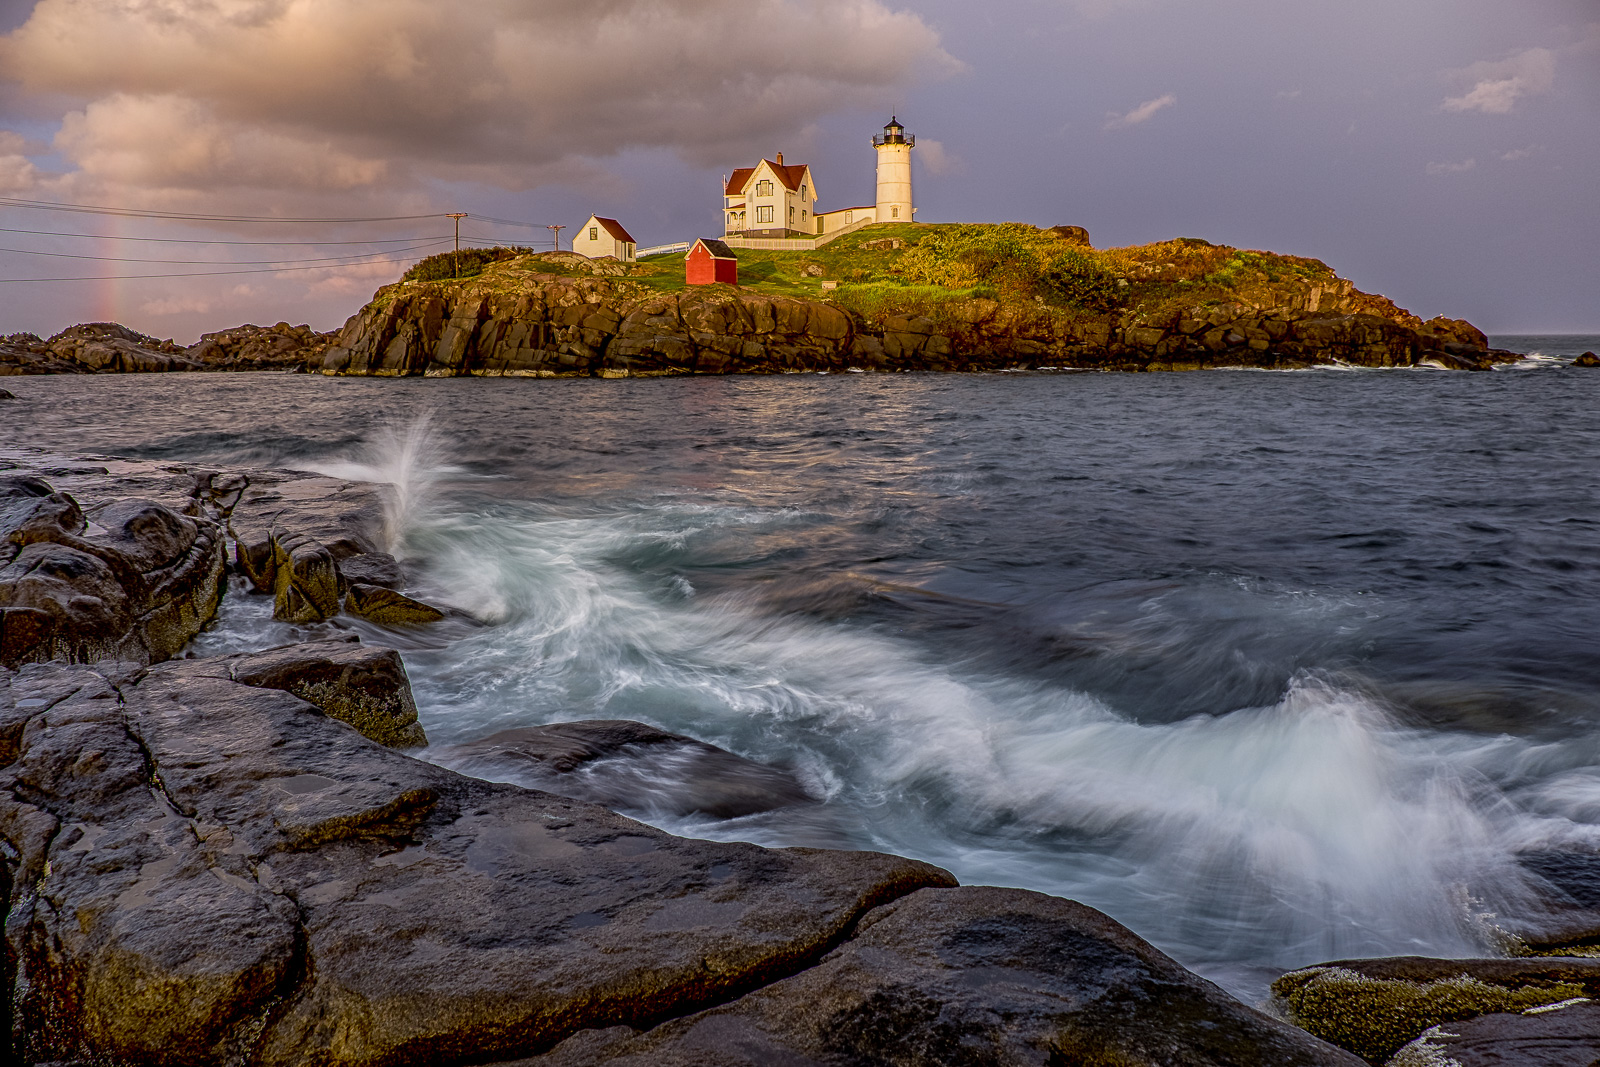 Maine,Maine Coast, lighthouse, ocean, storms, New England, rainbows, clouds, storms, photo